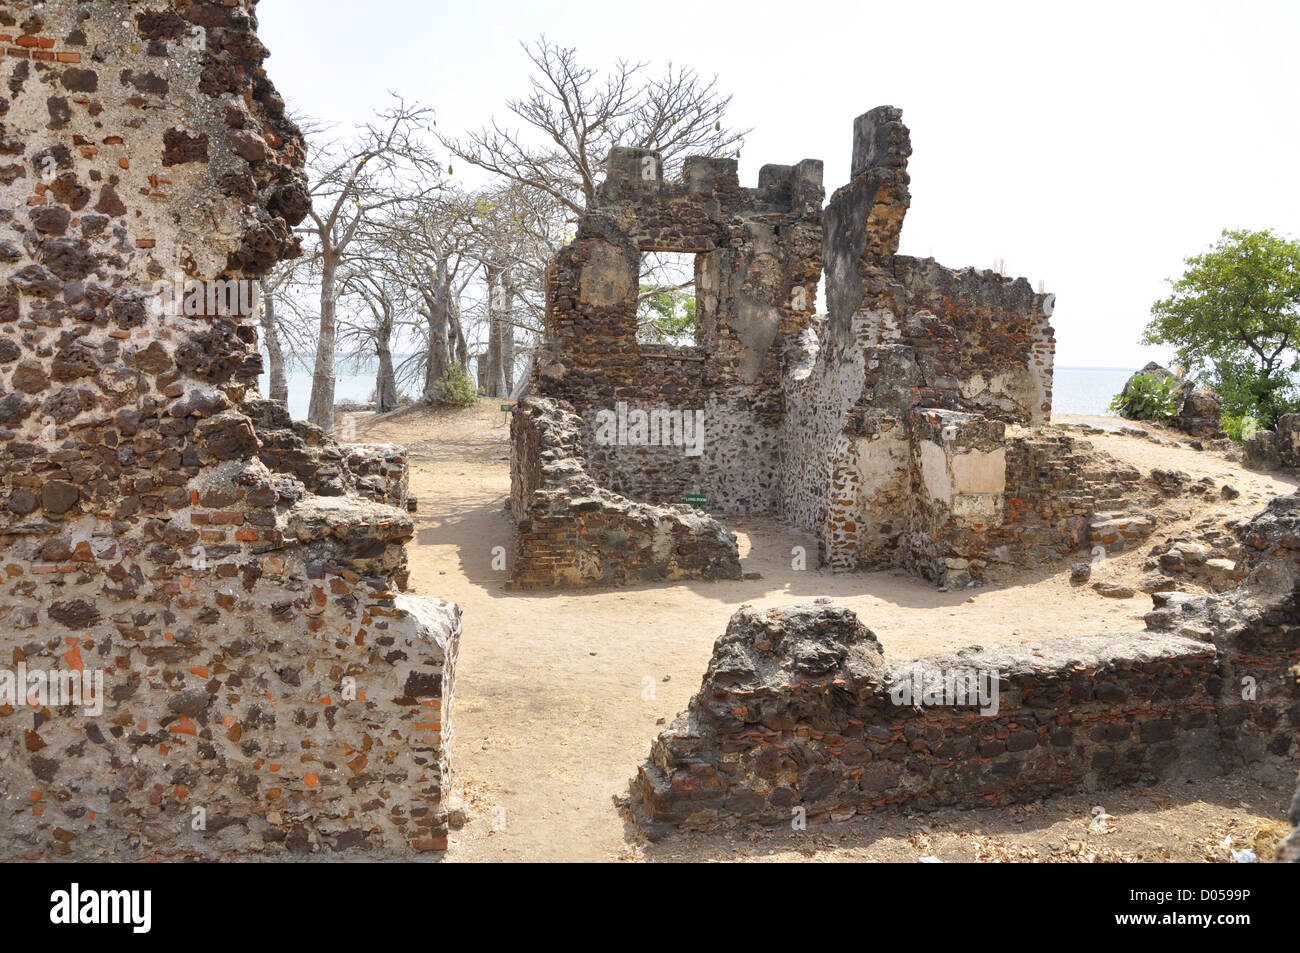 Slave islandKunta Kinte Island in The Gambia - Stock Image